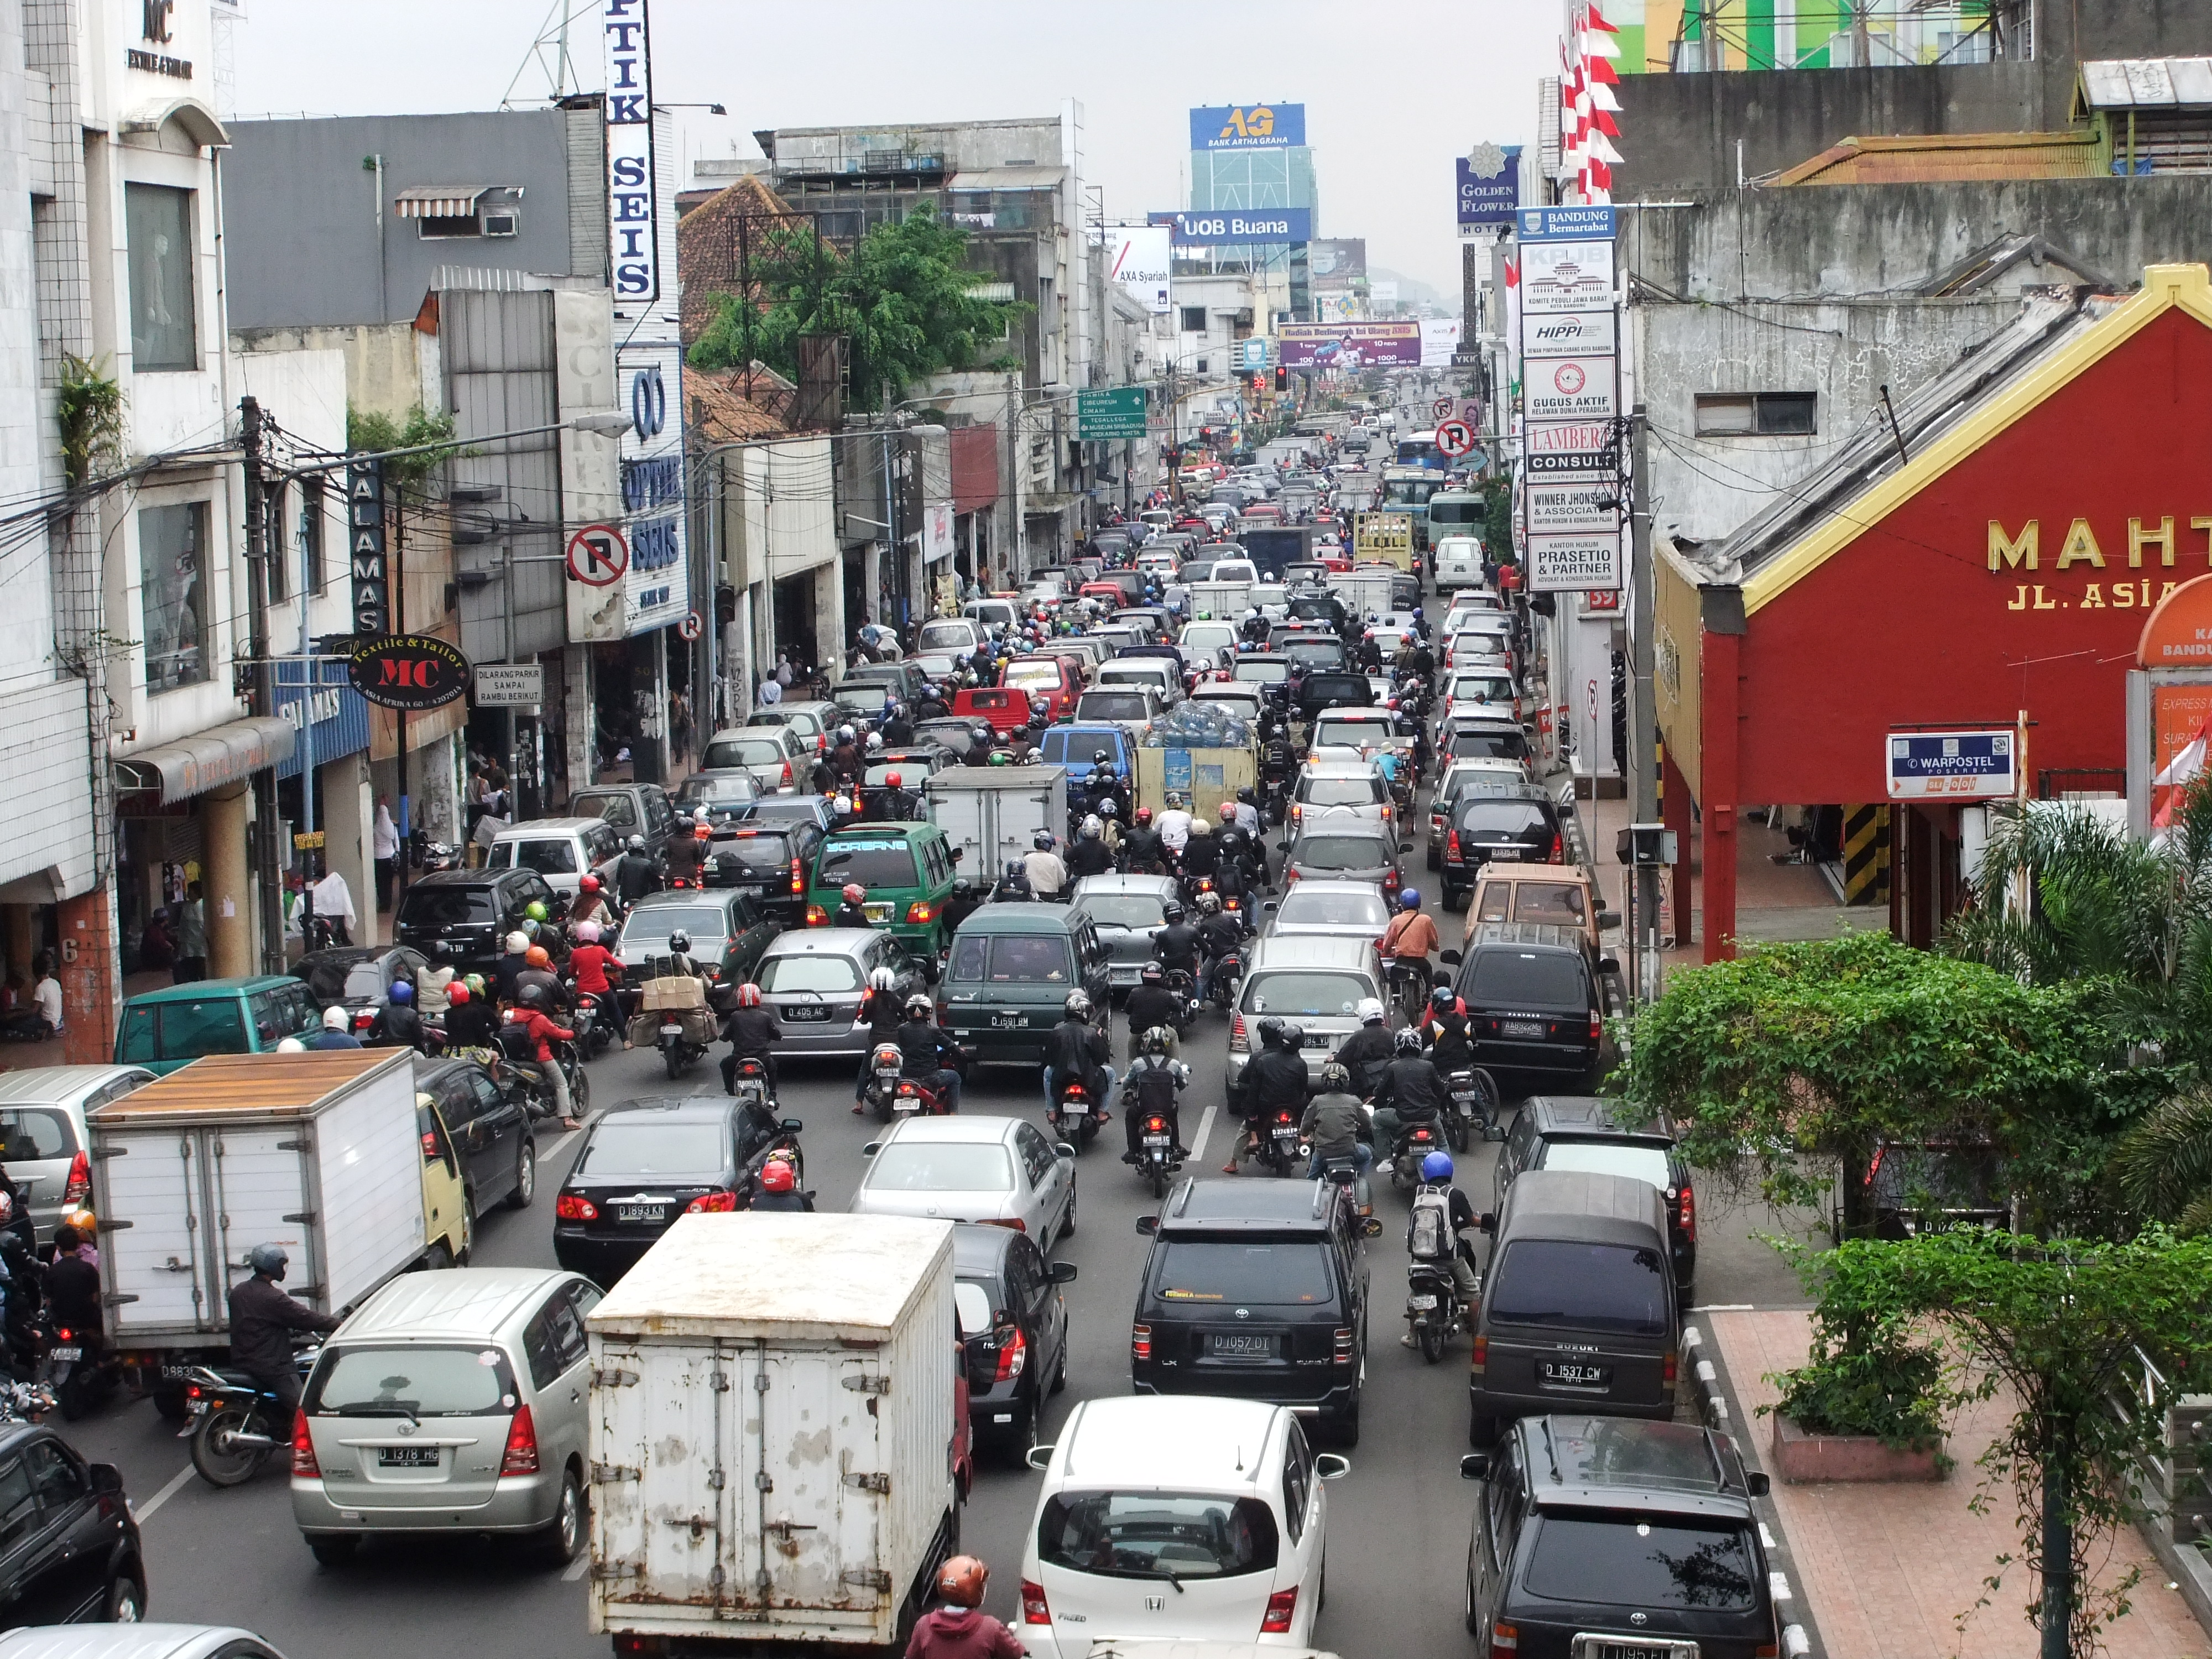 traffic jams in jakarta The alternative solution for traffic problem in  the variety of transportation modes mixed together in a single lane of traffic in jakarta, causing traffic jams in.